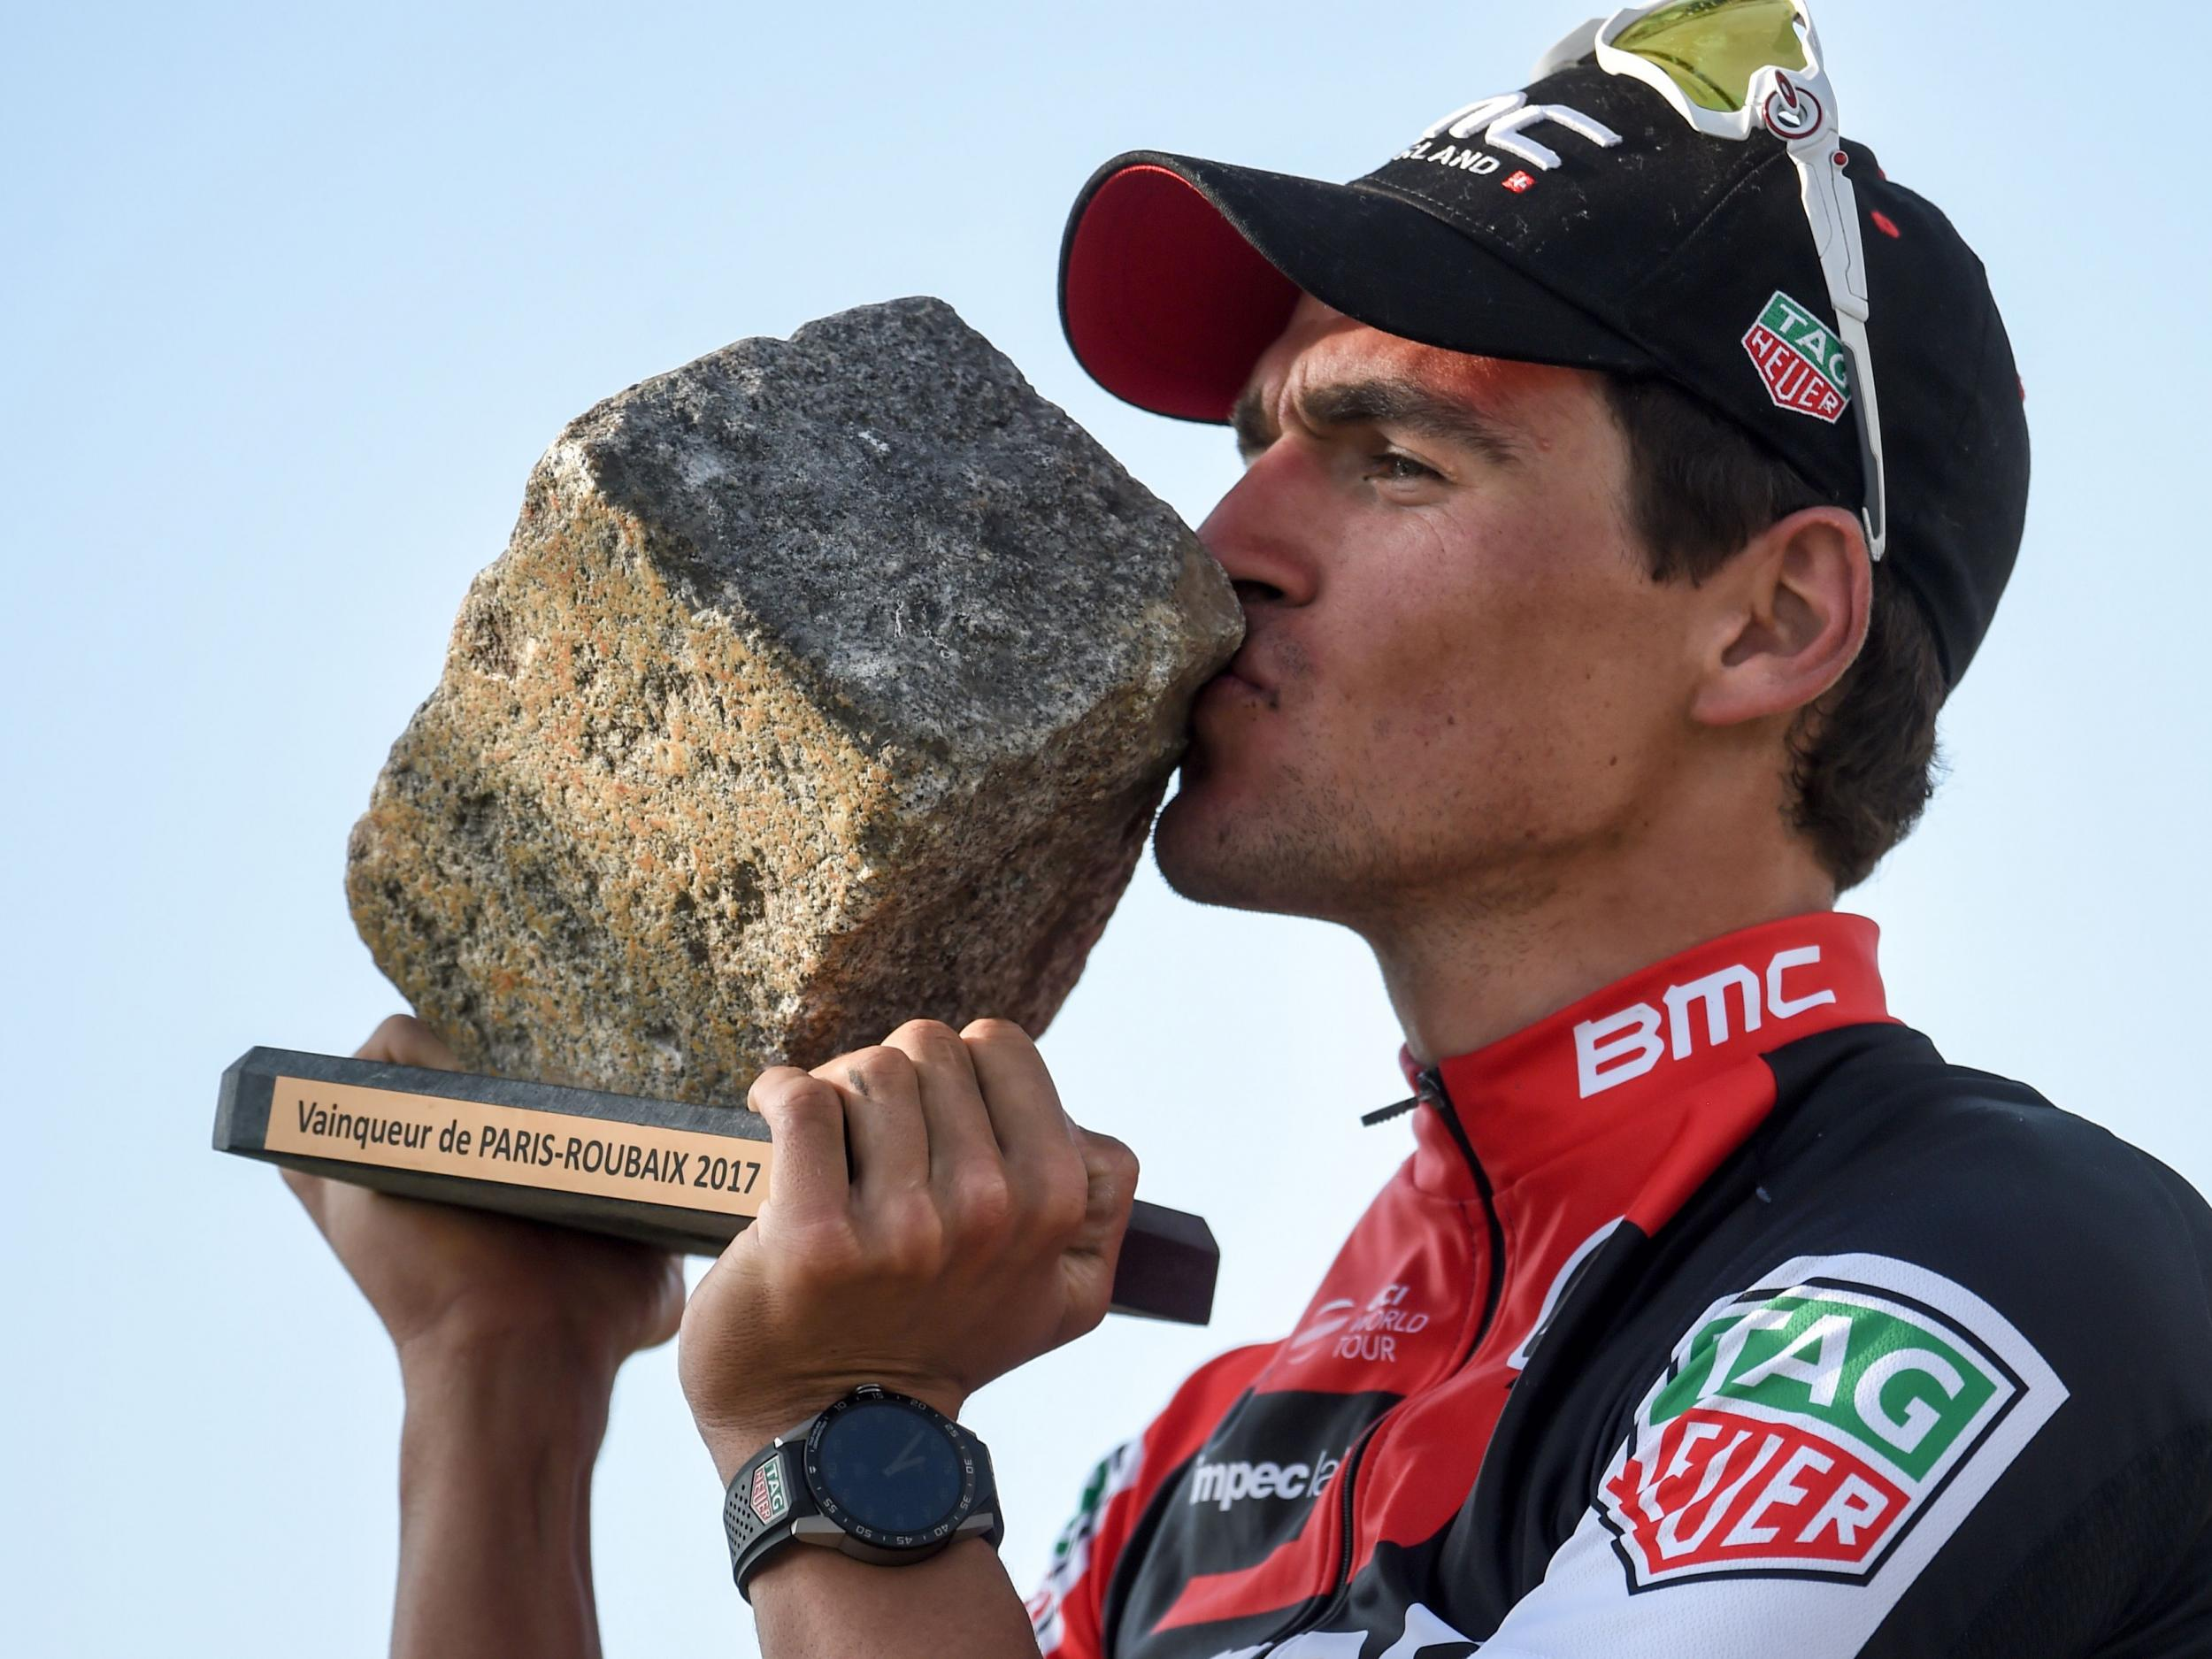 Greg Van Avermaet overtakes Zdenek Stybar just before the line to win fastest ever Paris-Roubaix classic